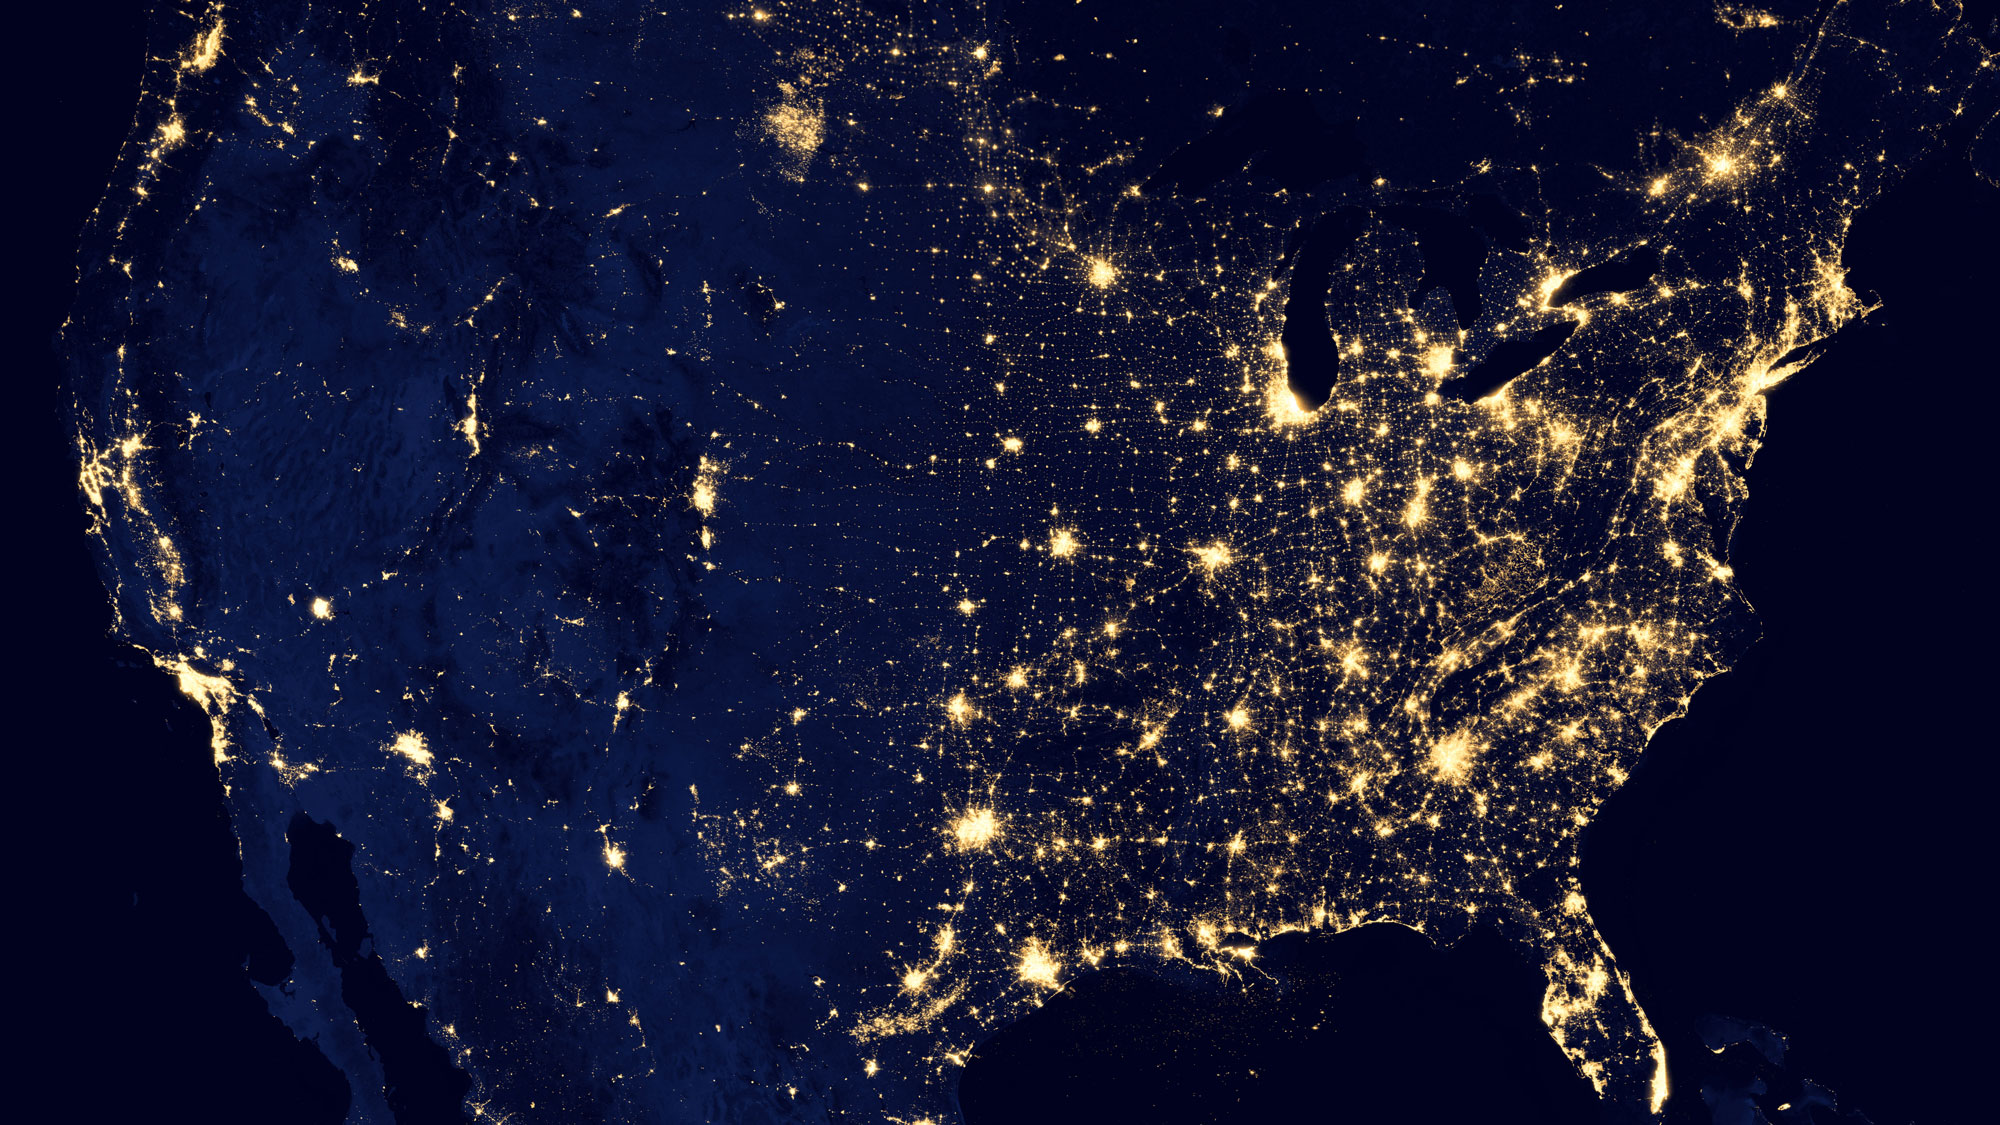 Night view of North American Continent